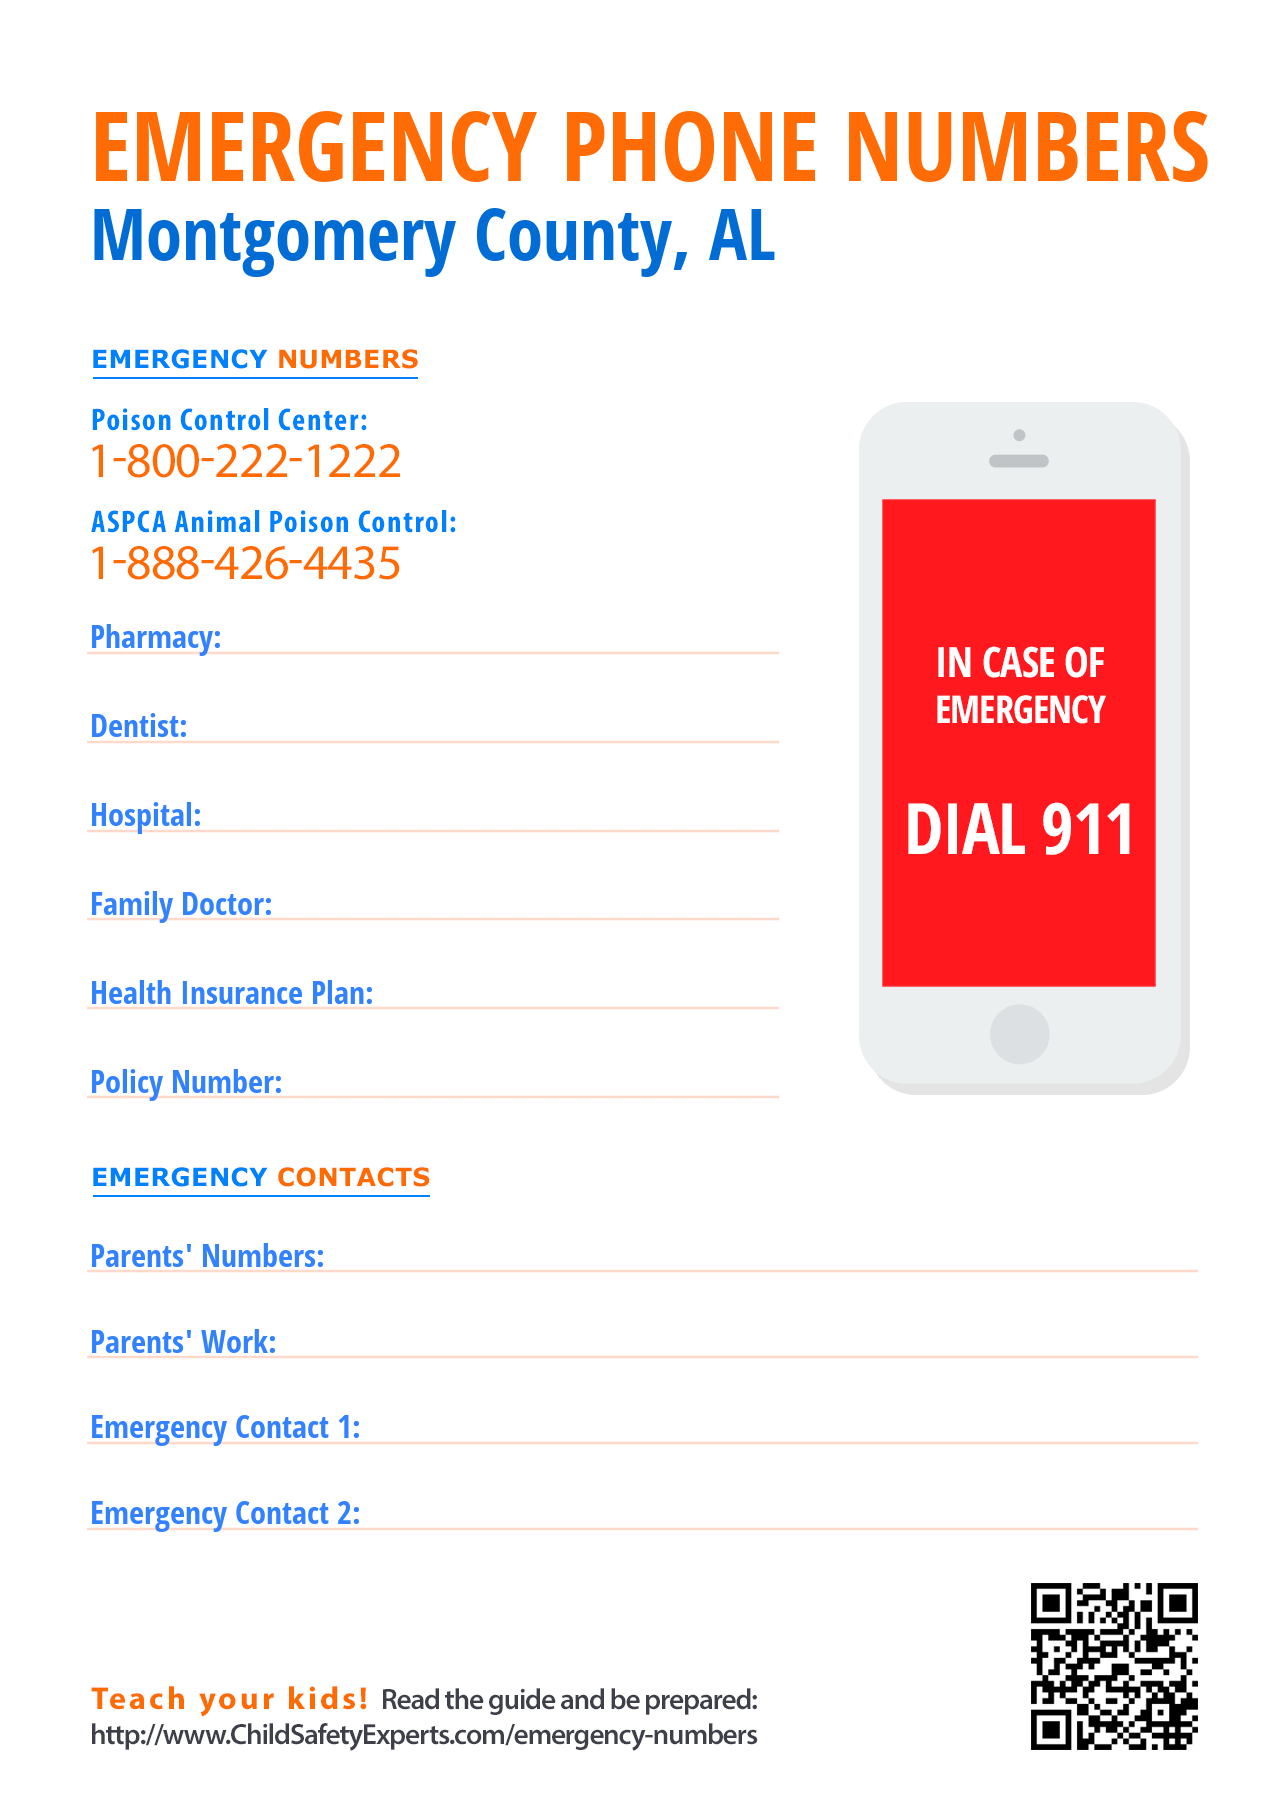 Important emergency phone numbers in Montgomery County, Alabama